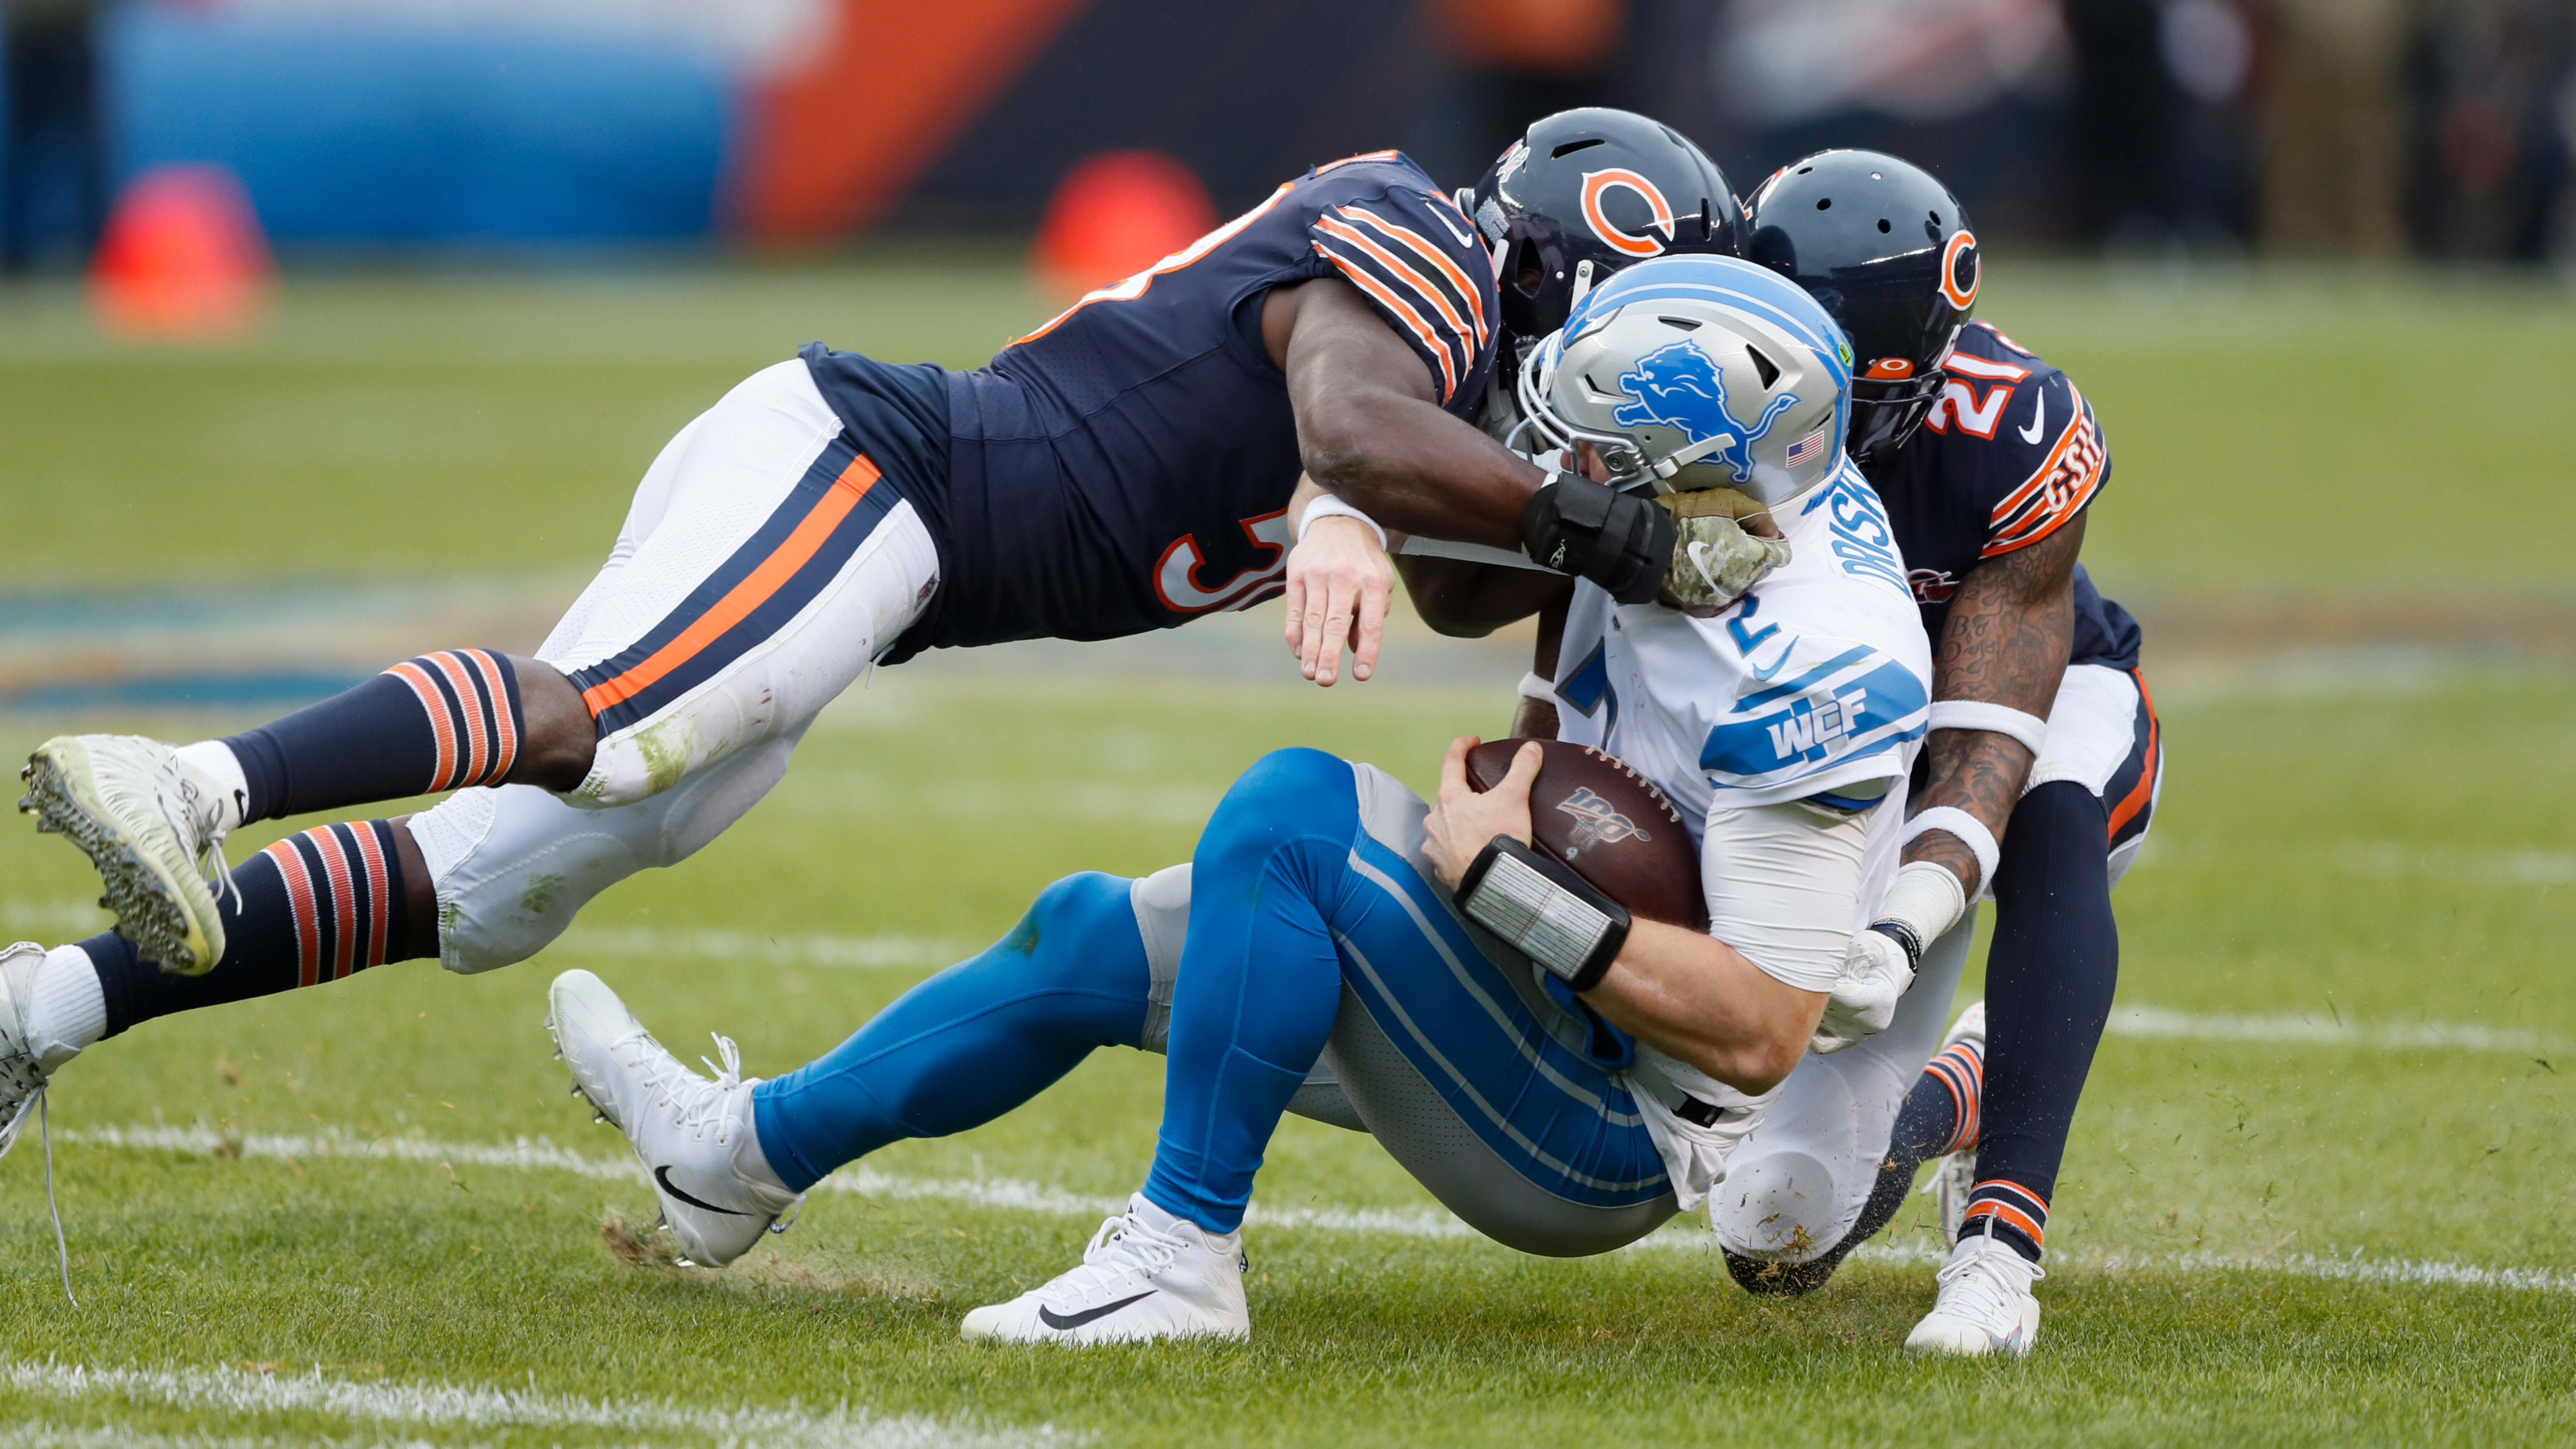 Betting line on bears lions game bitcoins worth millions lost in landfill daughter